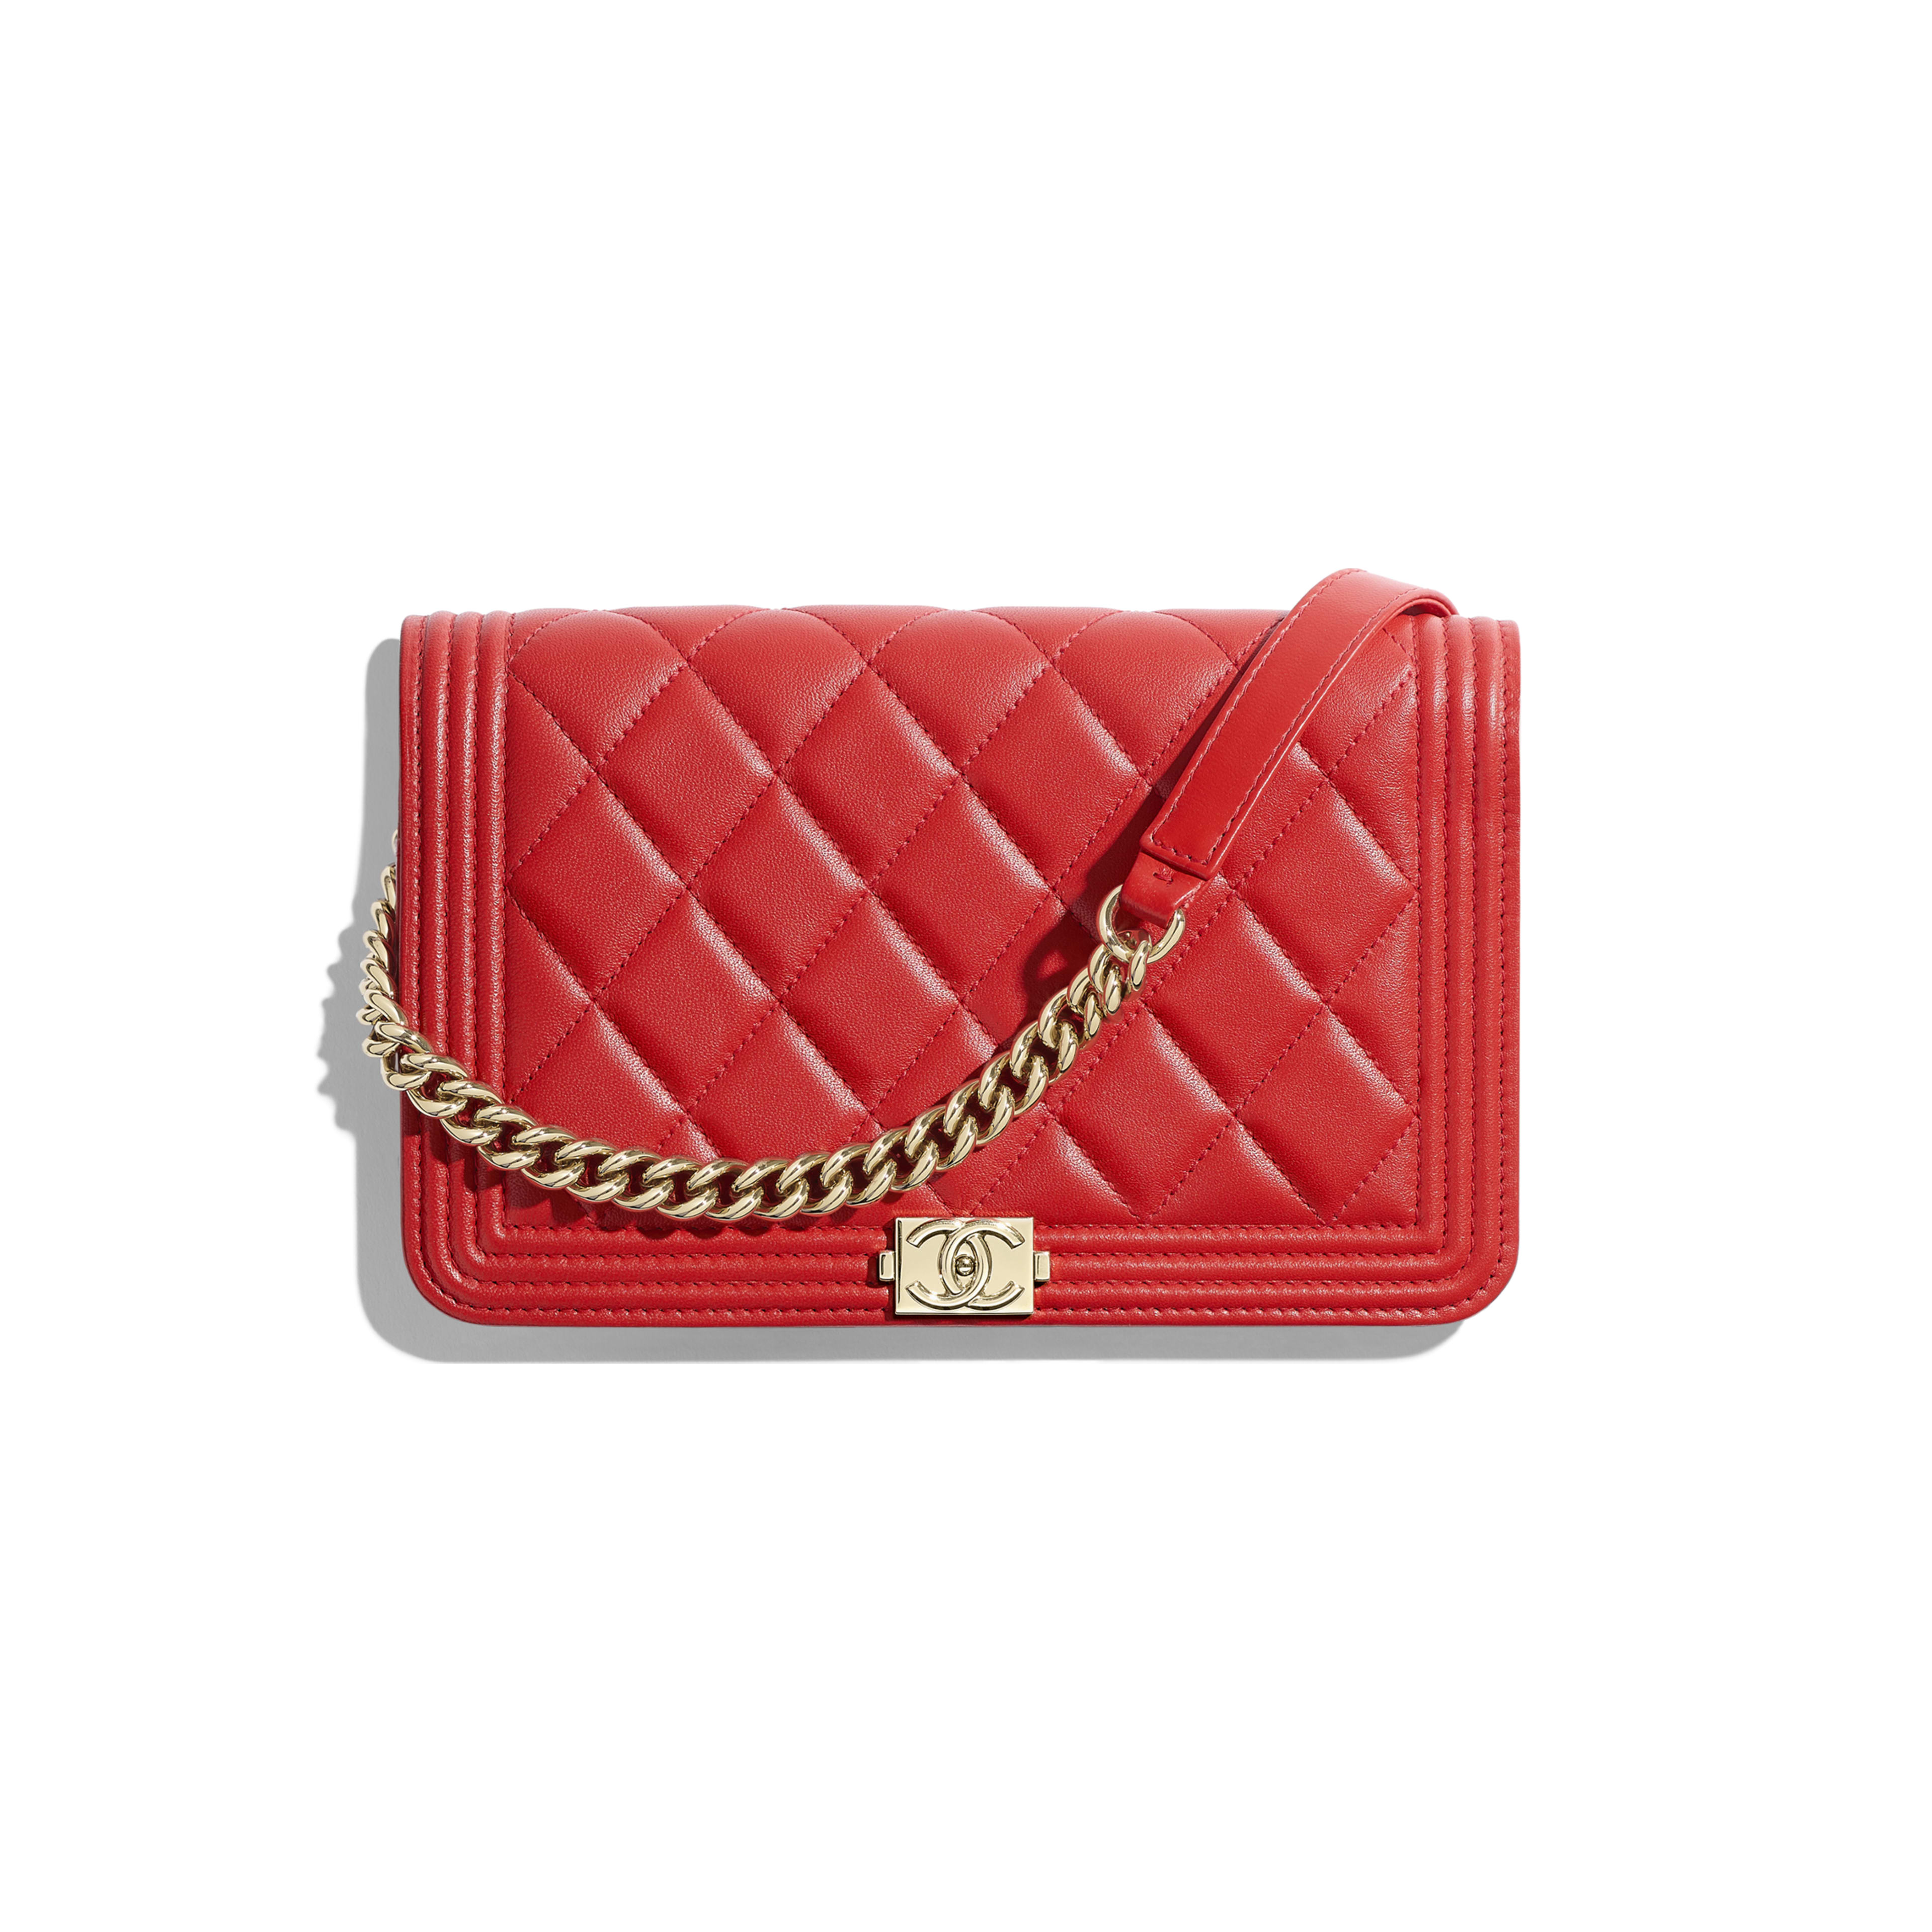 Lambskin   Gold-Tone Metal Red BOY CHANEL Wallet on Chain ... 17bc972e2